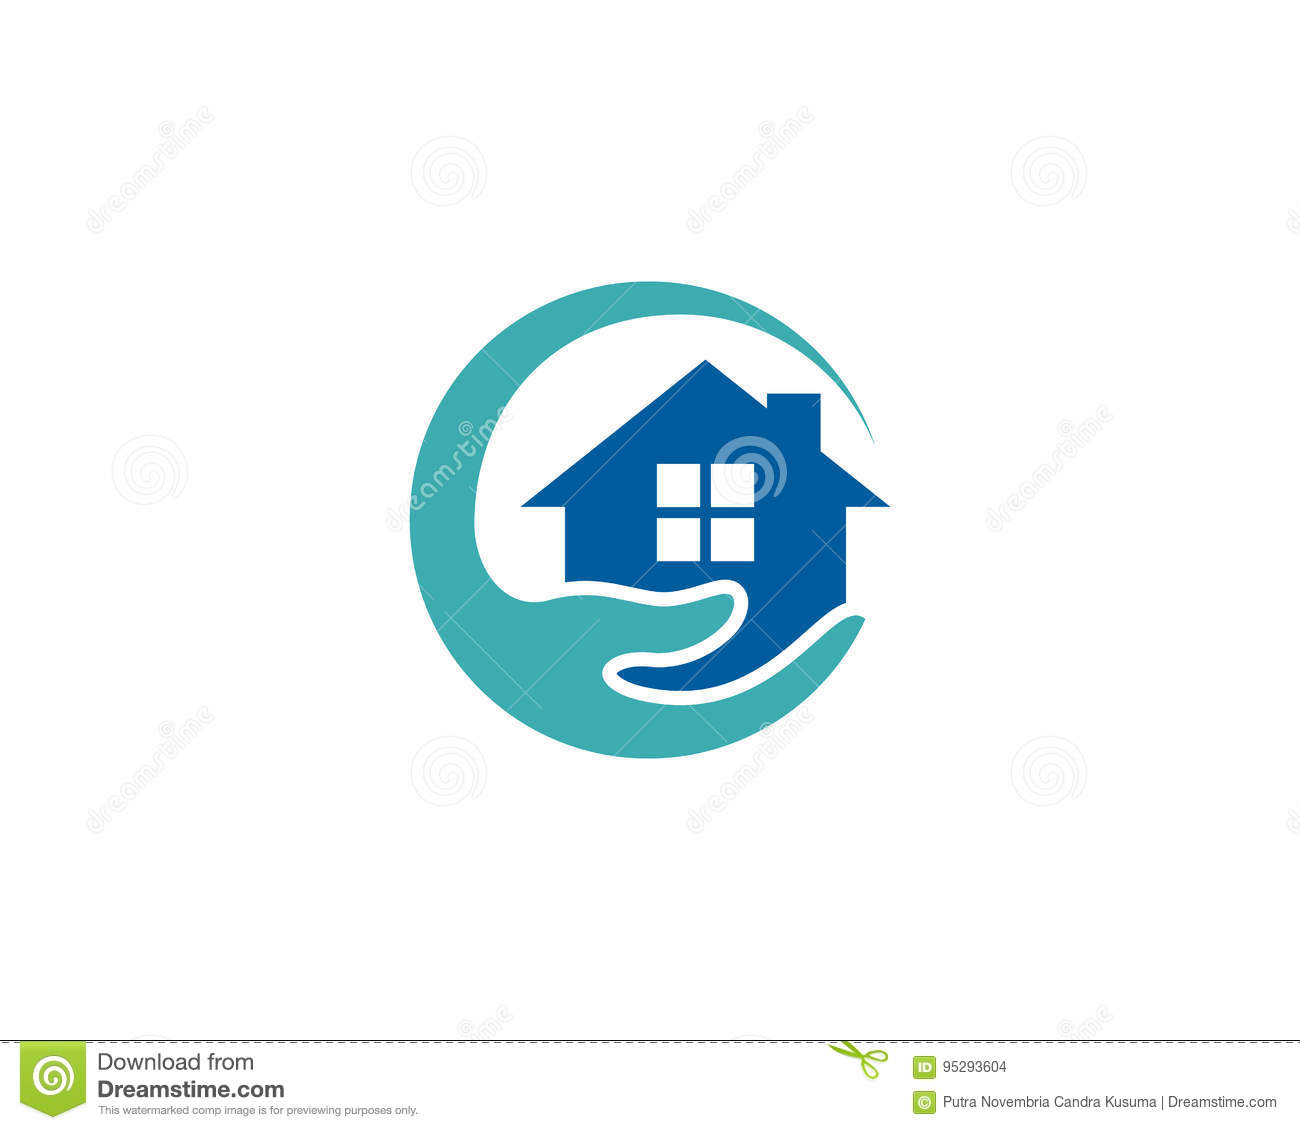 House home care icon logo design element stock vector illustration of house happy 95293604 - Home health care logo design ...